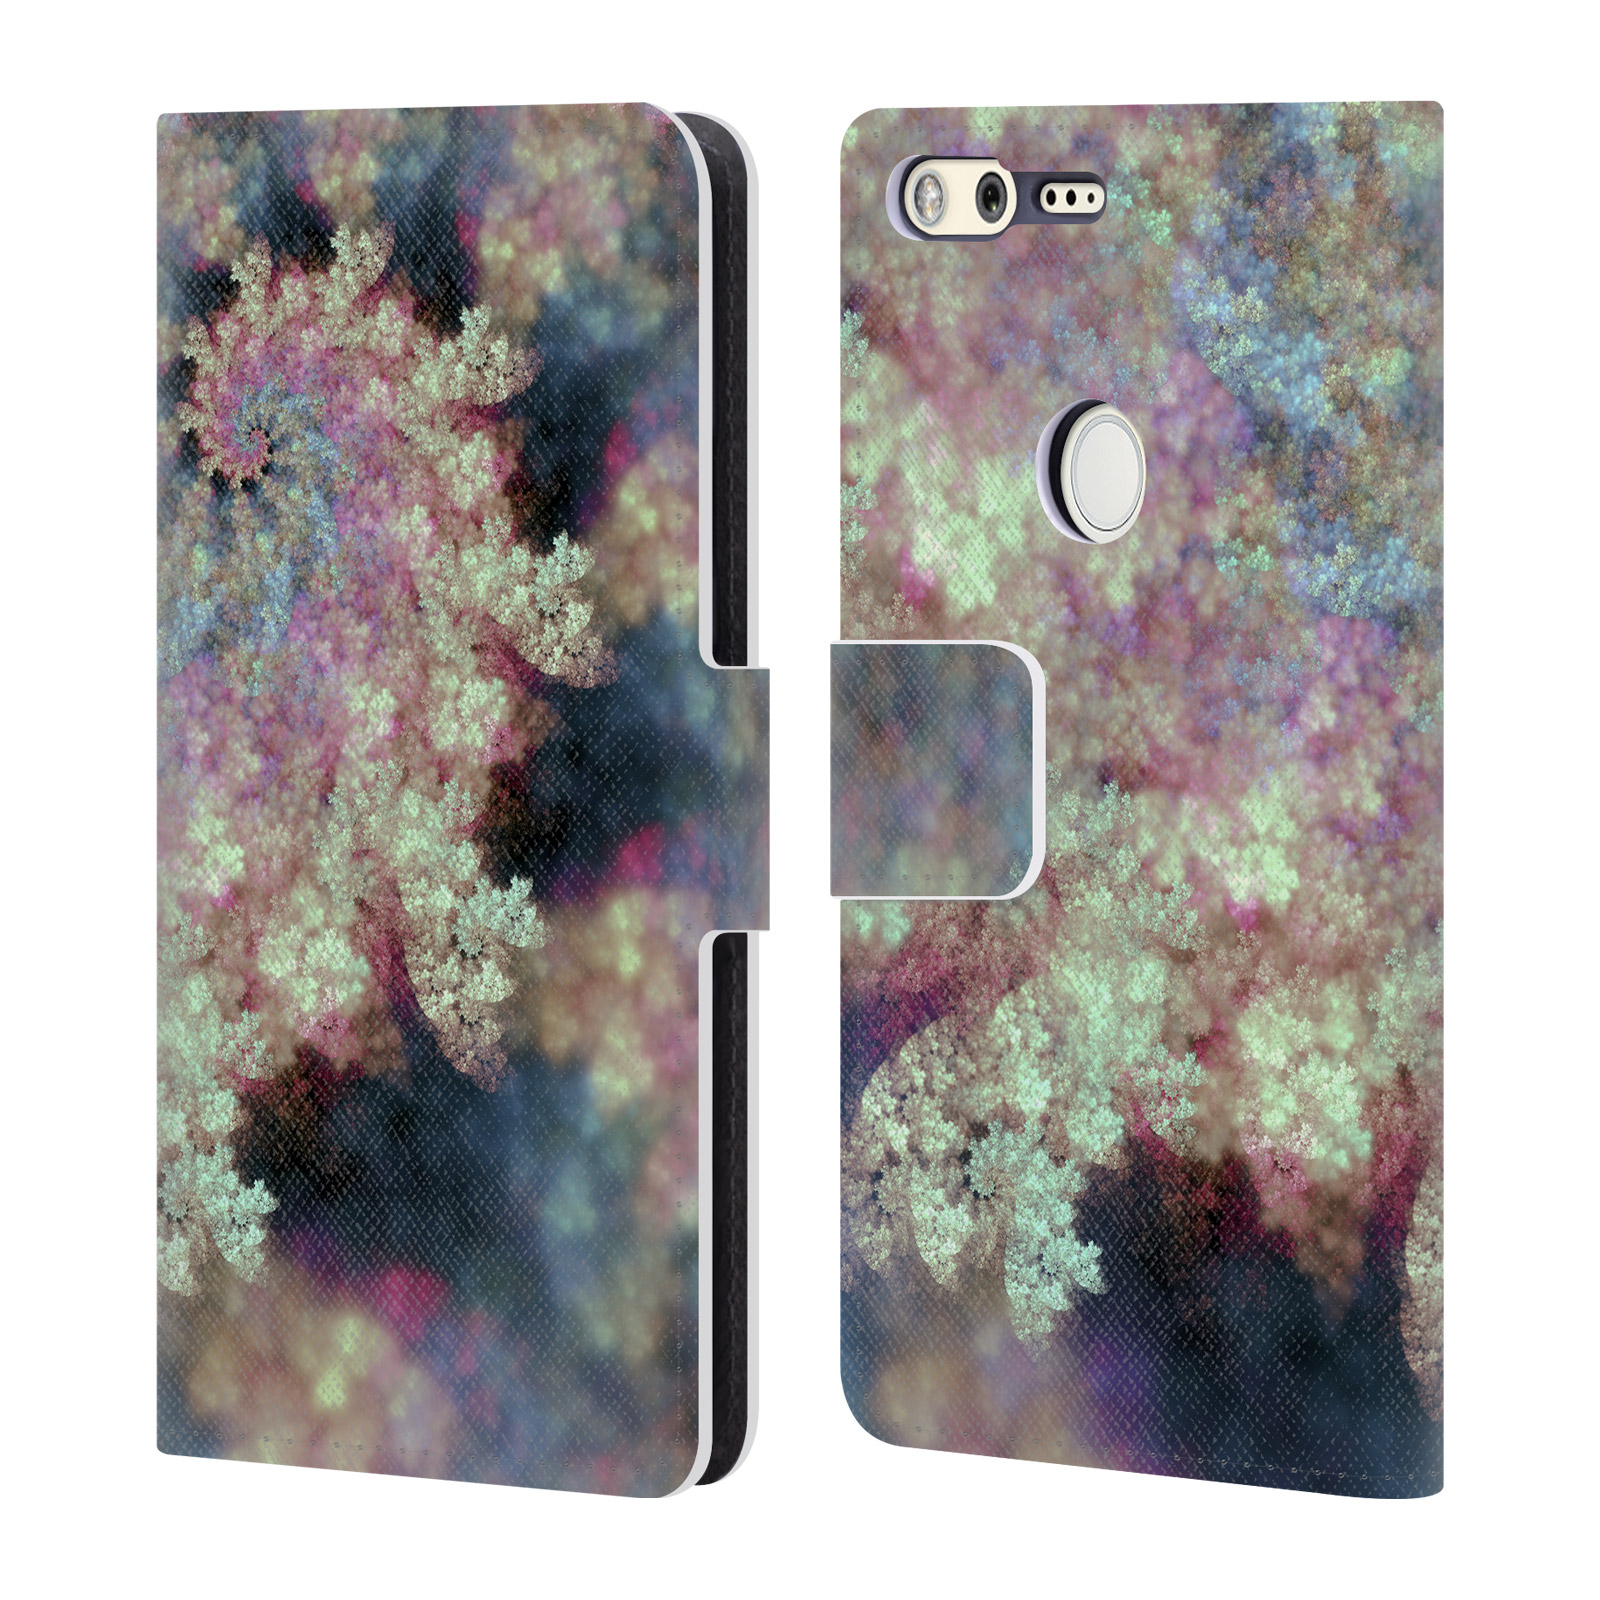 OFFICIAL-ANDI-GREYSCALE-KALEIDOSCOPE-LEATHER-BOOK-WALLET-CASE-FOR-GOOGLE-PHONES